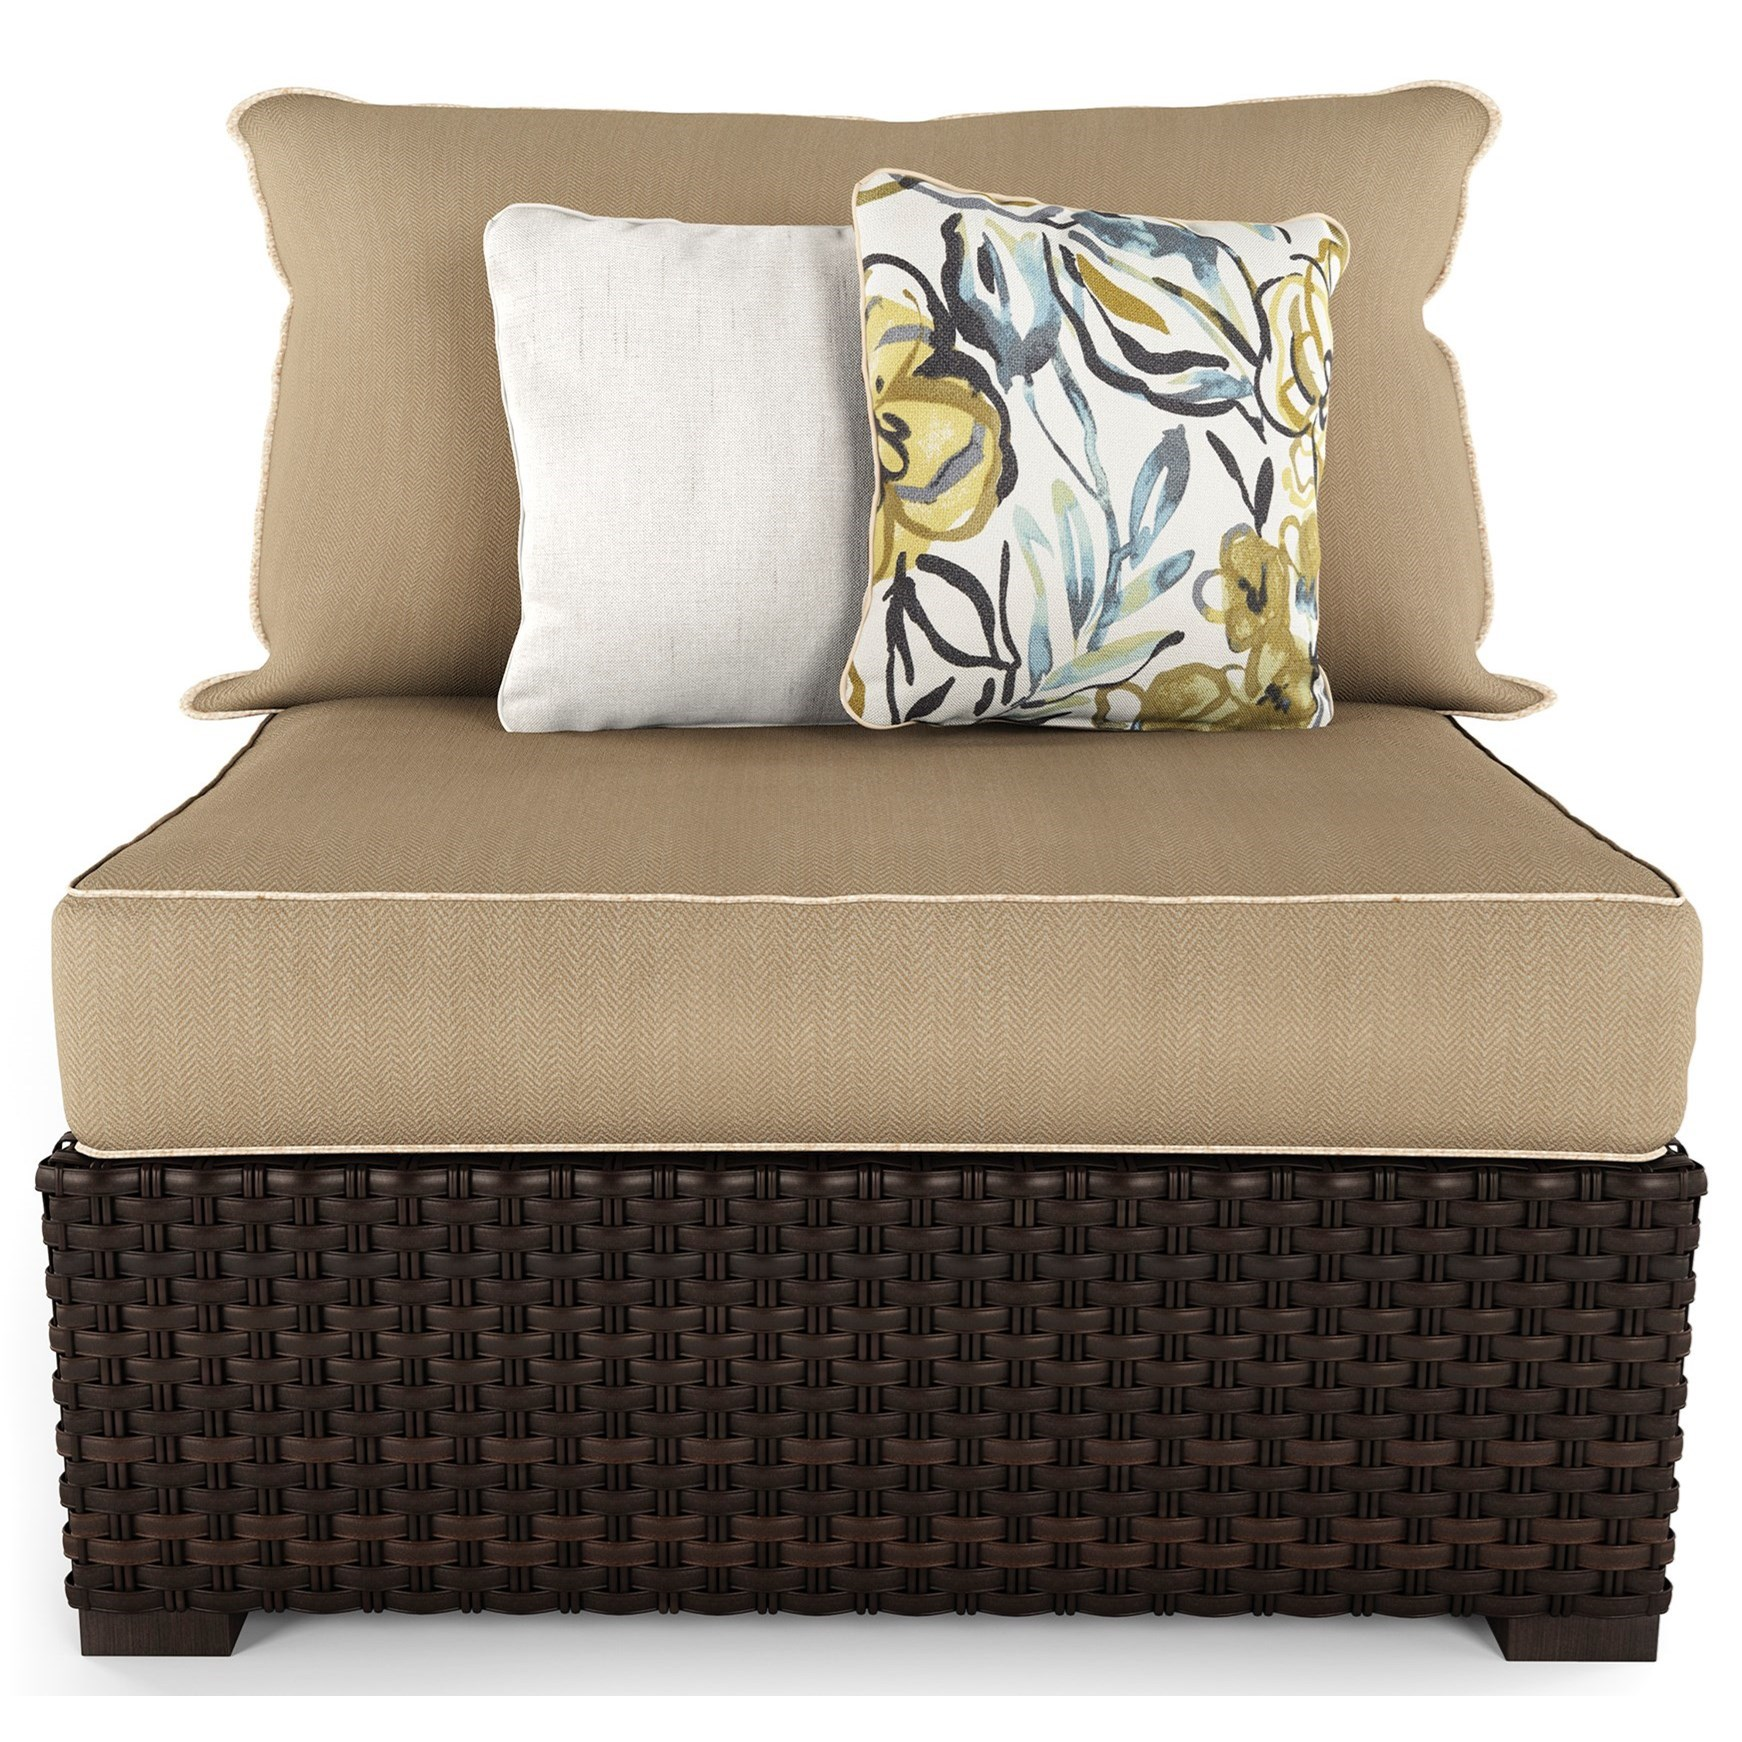 Signature Design by Ashley Spring Ridge Set of 2 Armless Chairs with Cushions - Item Number: P452-846